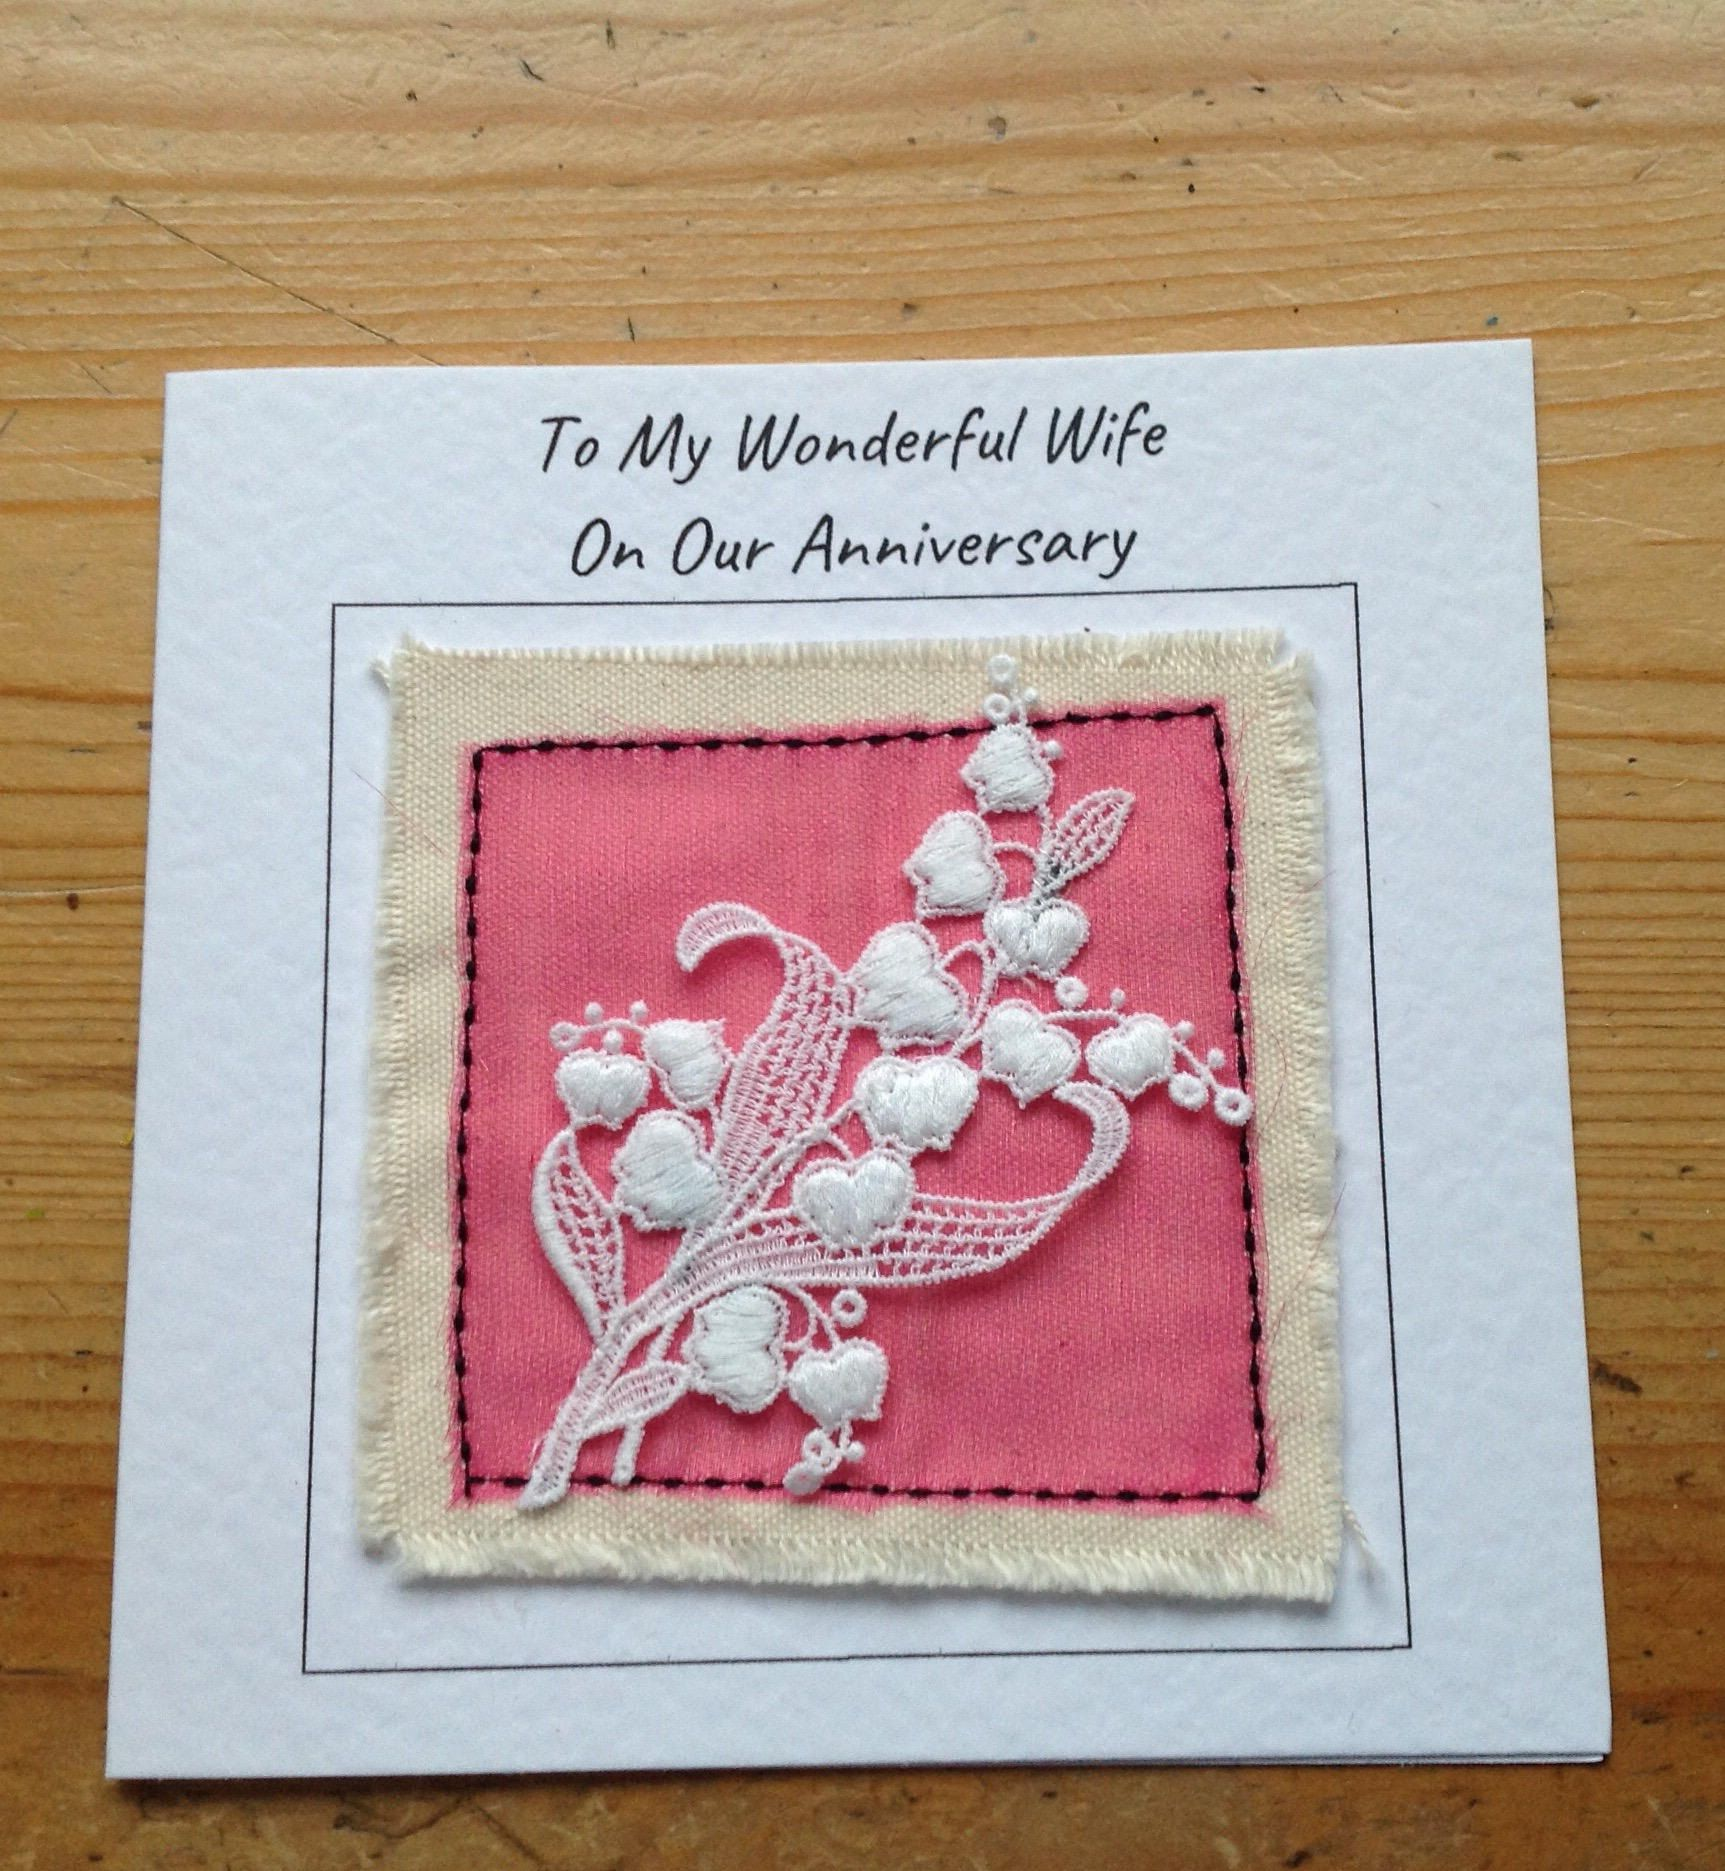 13th anniversary lace card. Anniversary card for husband